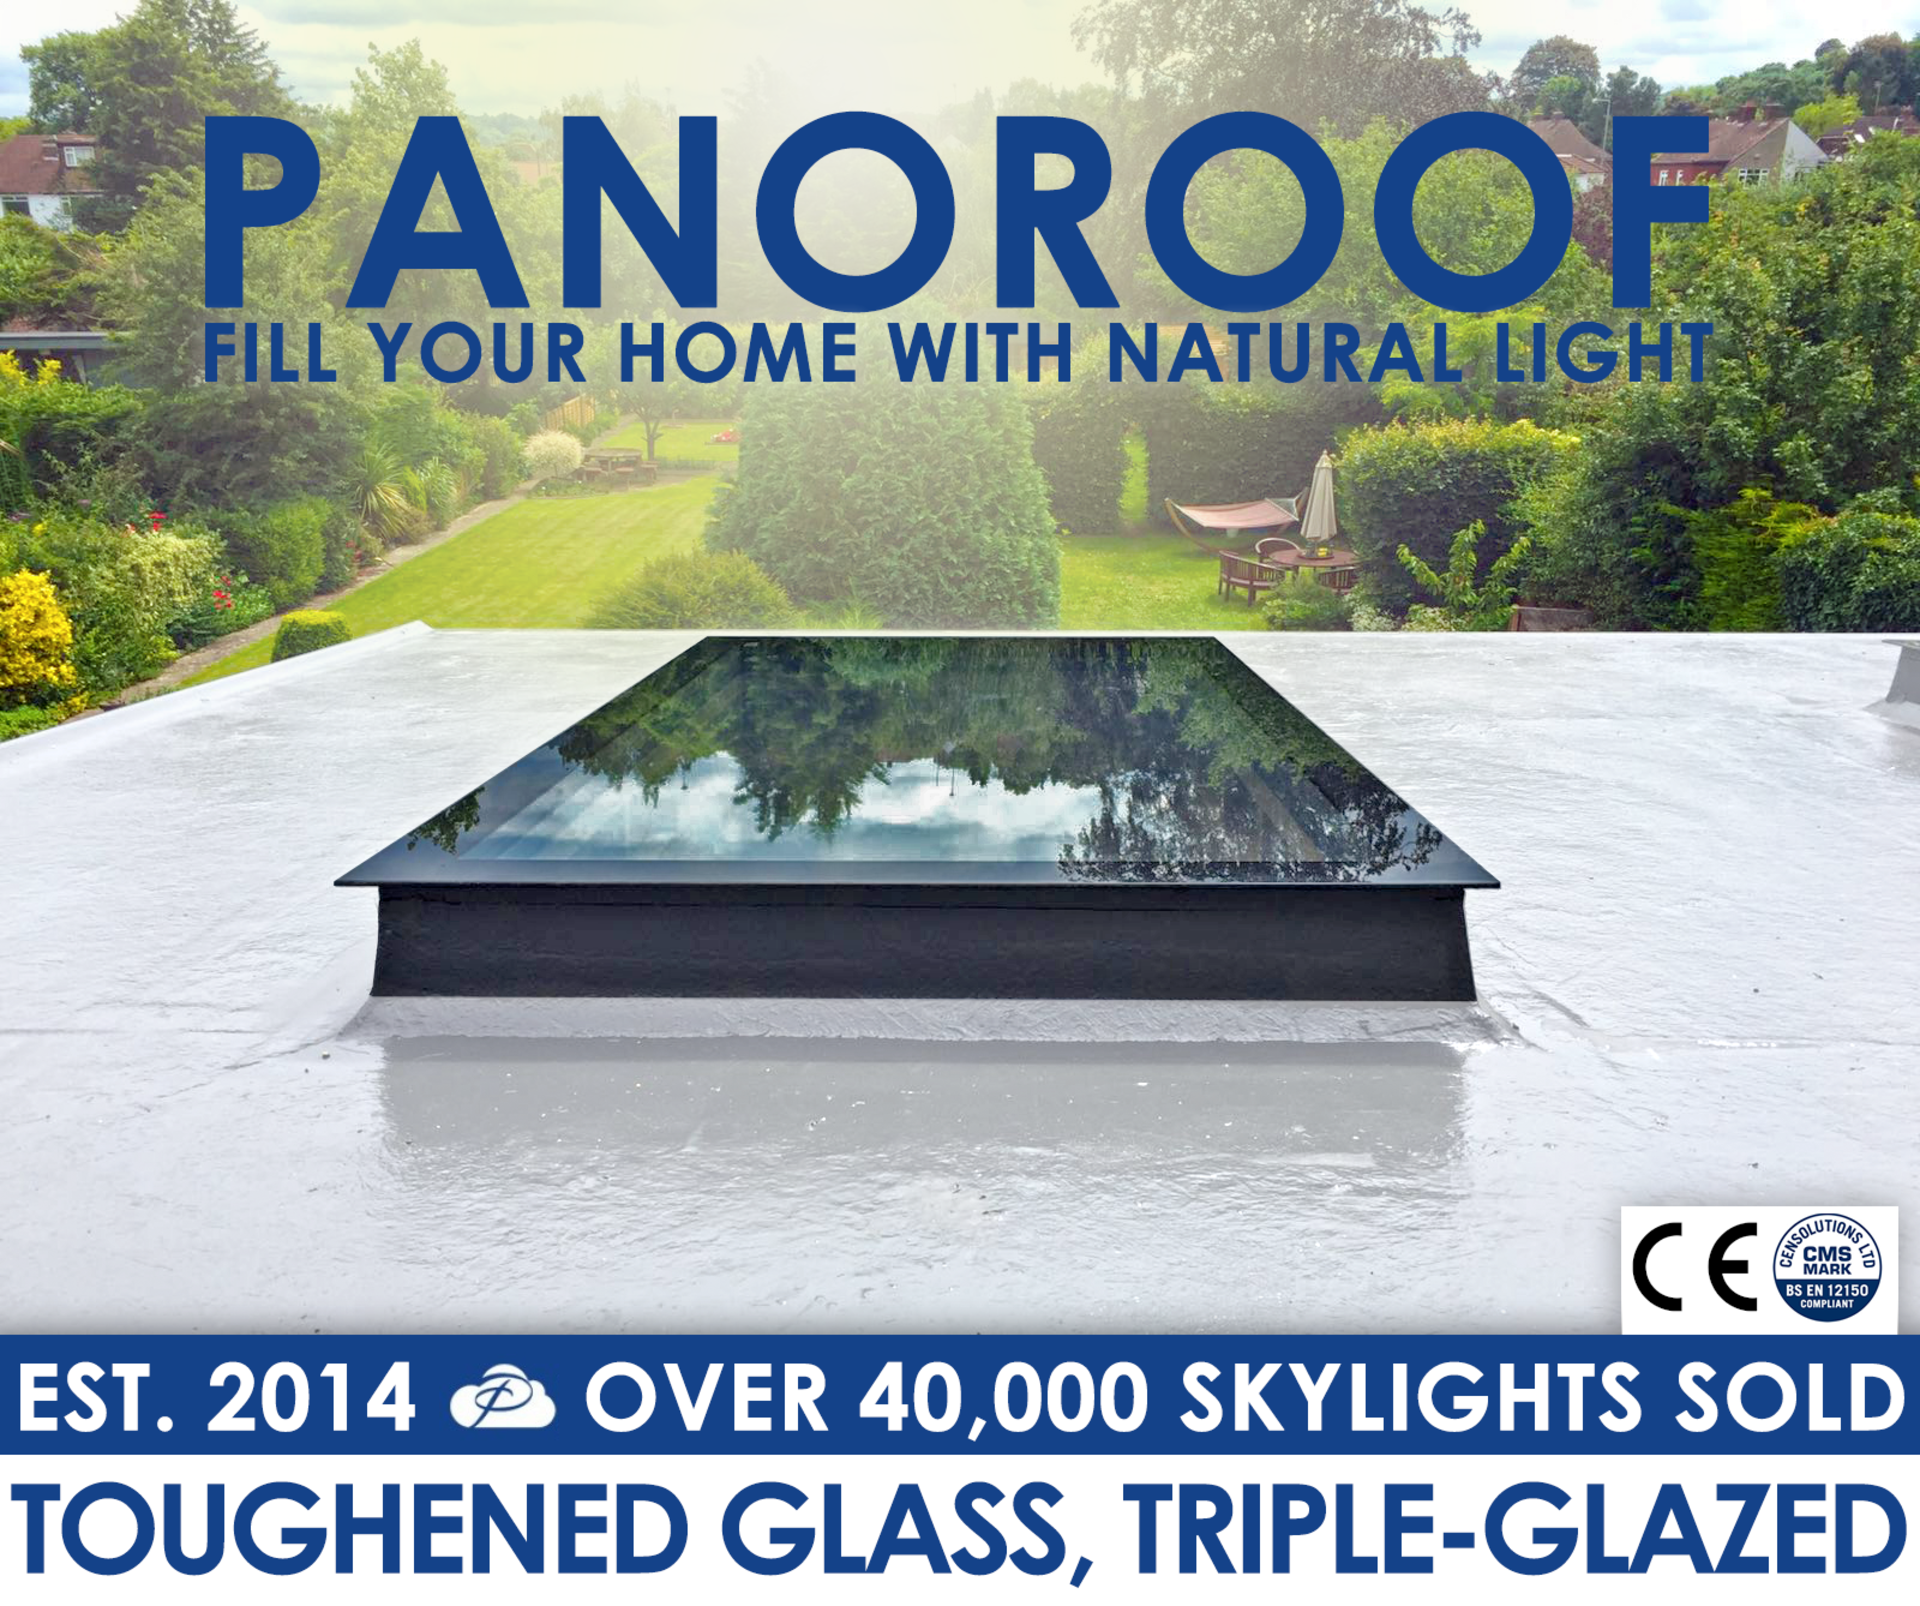 Panoroof 1000x4000mm (inside Size Visable glass area) Seamless Glass Skylight Flat Roof Rooflight